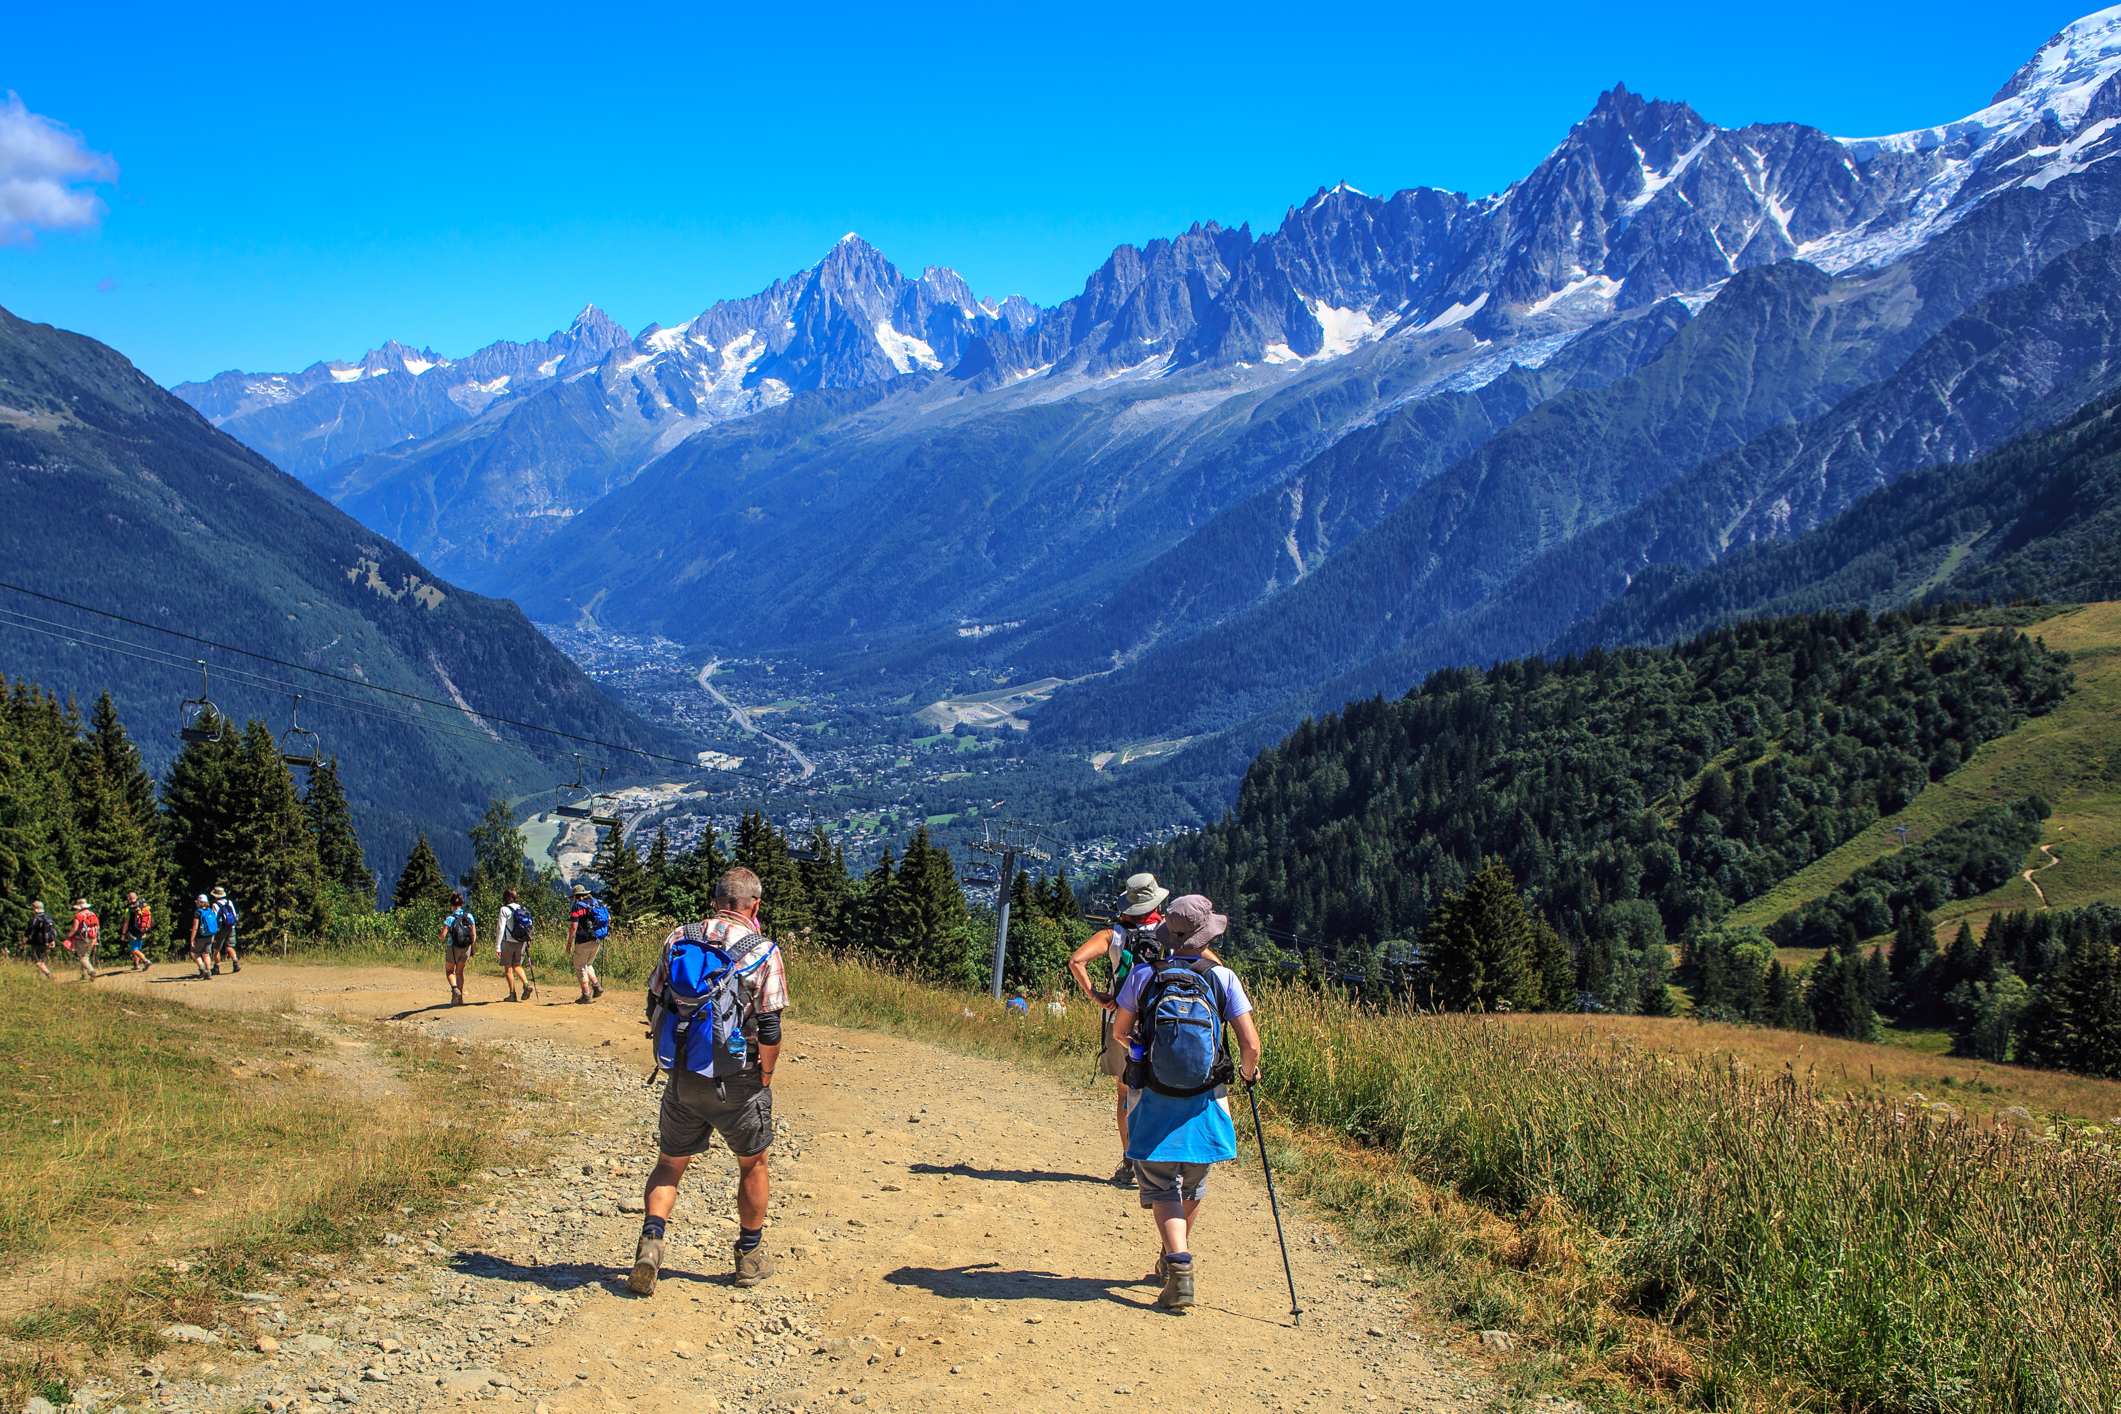 Les Houches. Hiking in Chamonix with Russell Tours